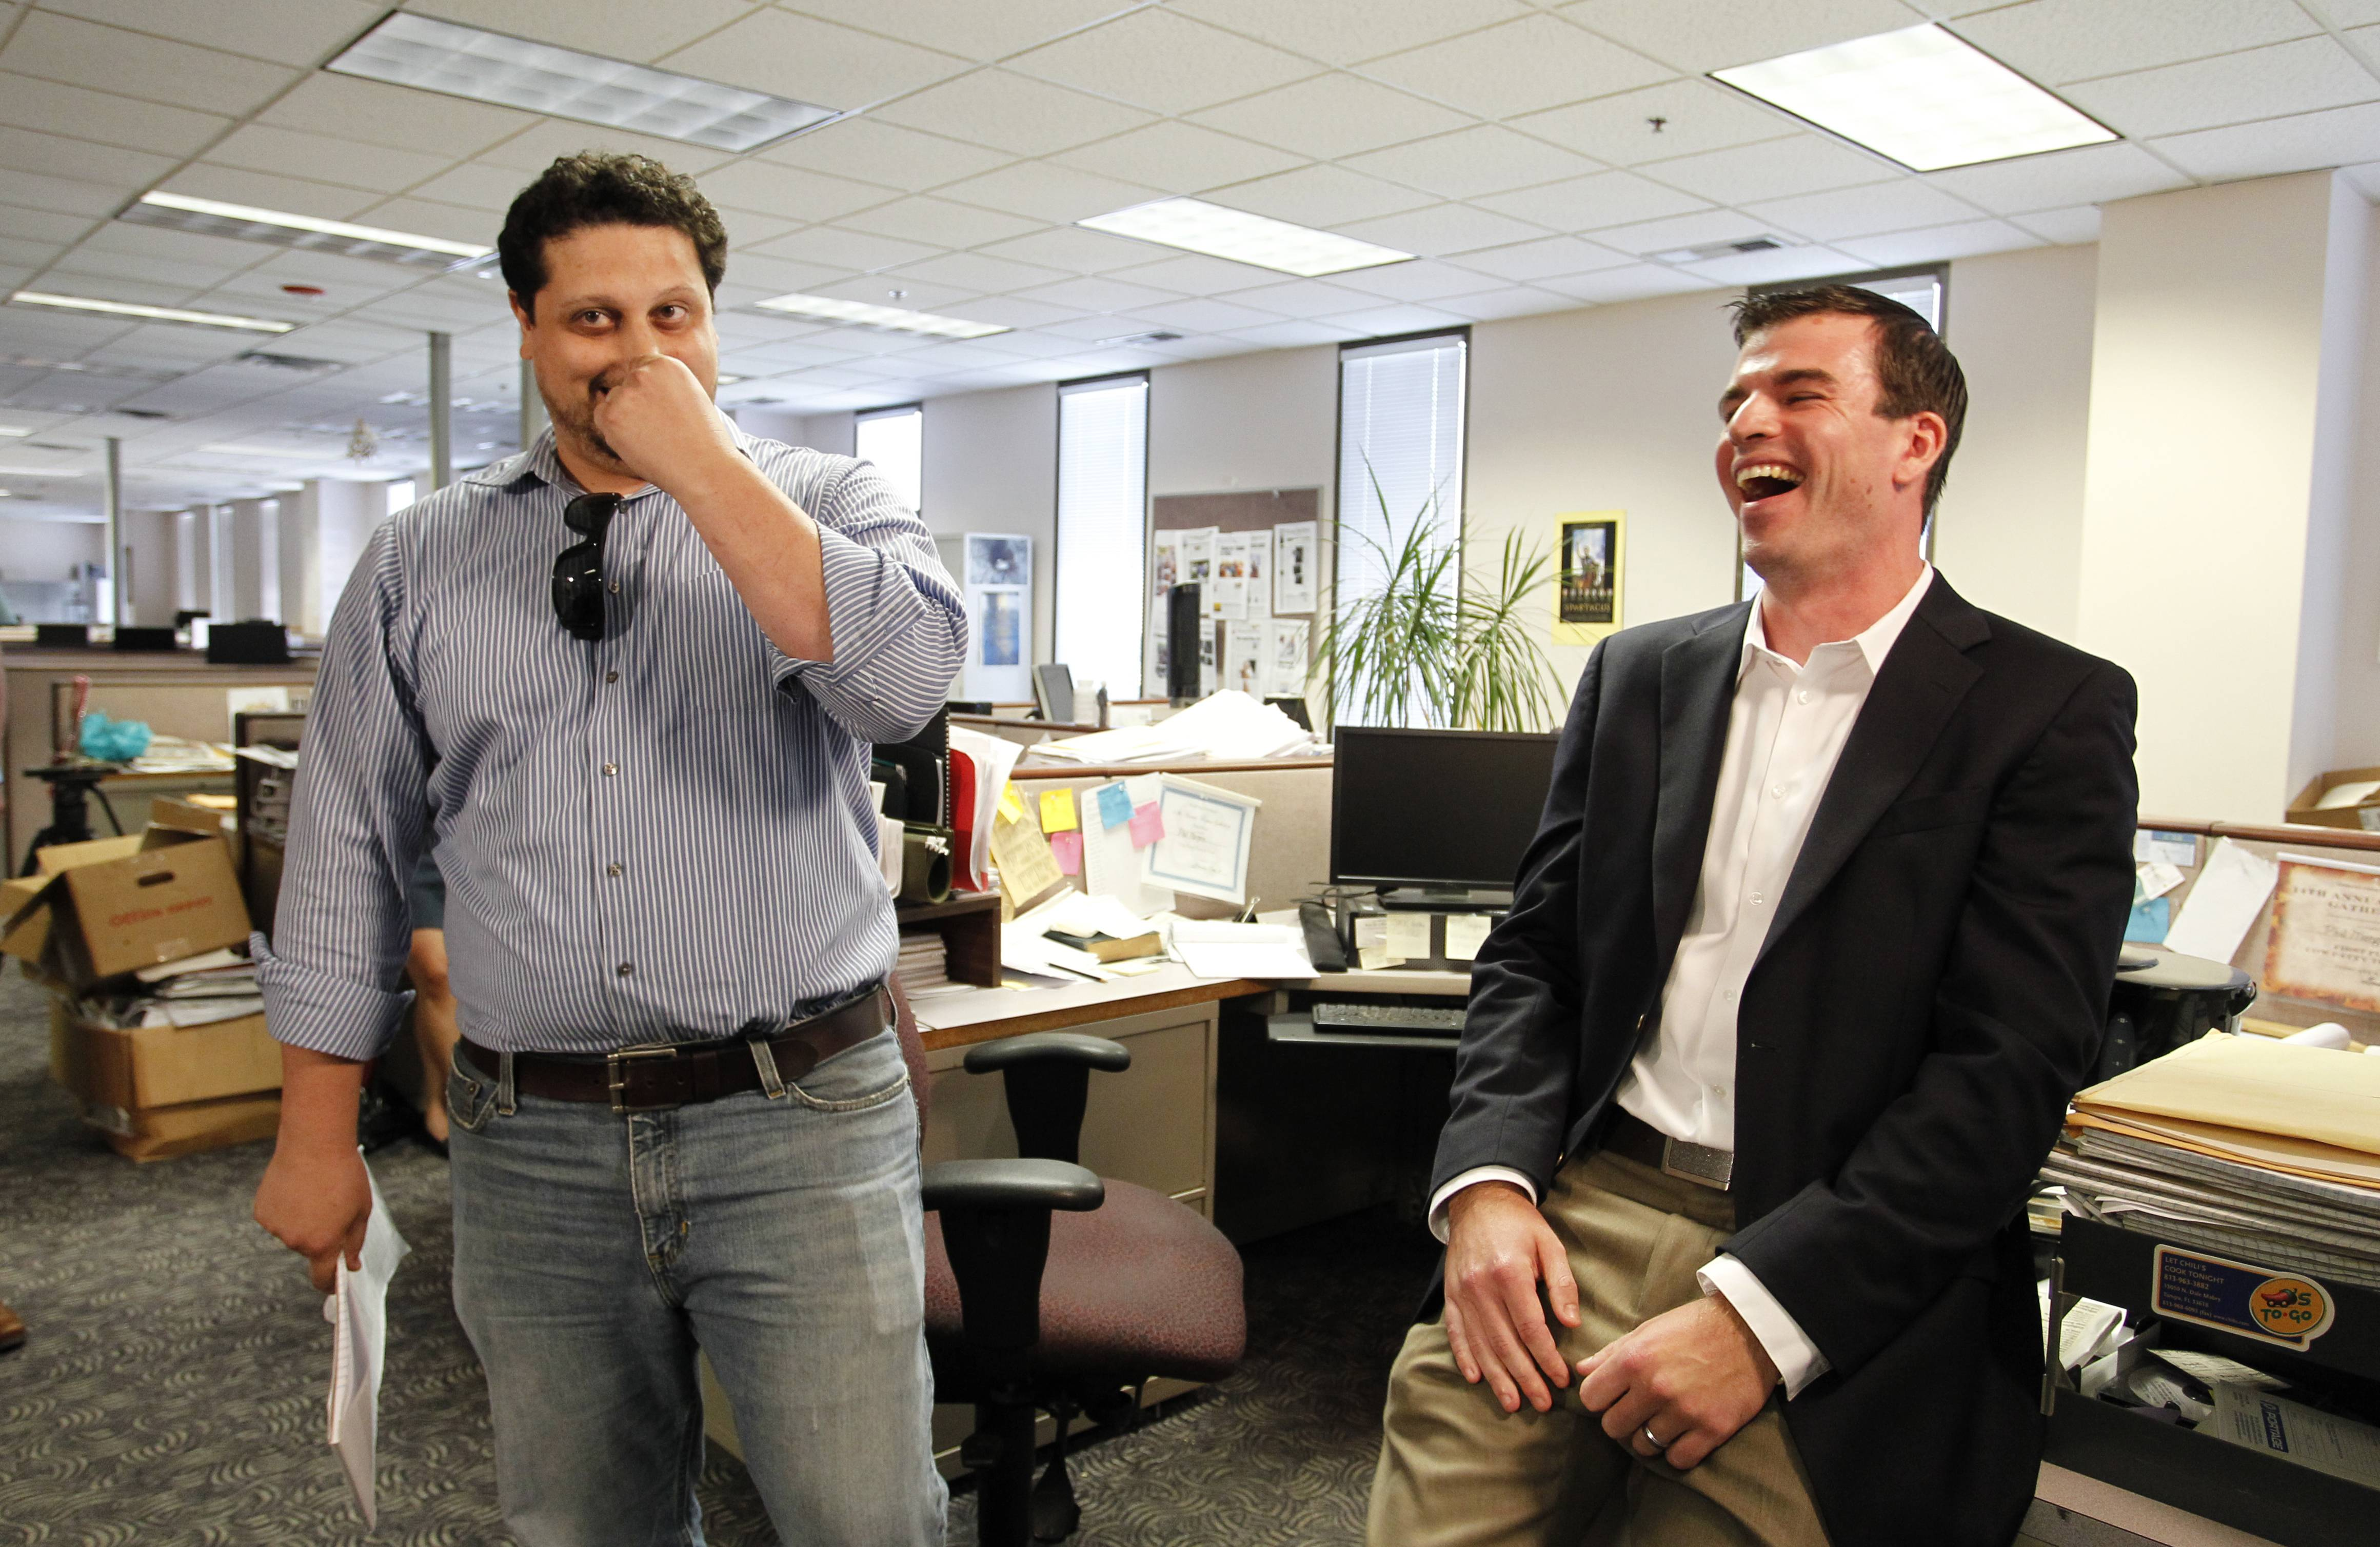 Tampa Bay Times reporters Michael LaForgia, left, and Will Hobson celebrate Monday after hearing they won the 2014 Pulitzer Prize for Local Reporting for writing about the squalid housing for the city's homeless.